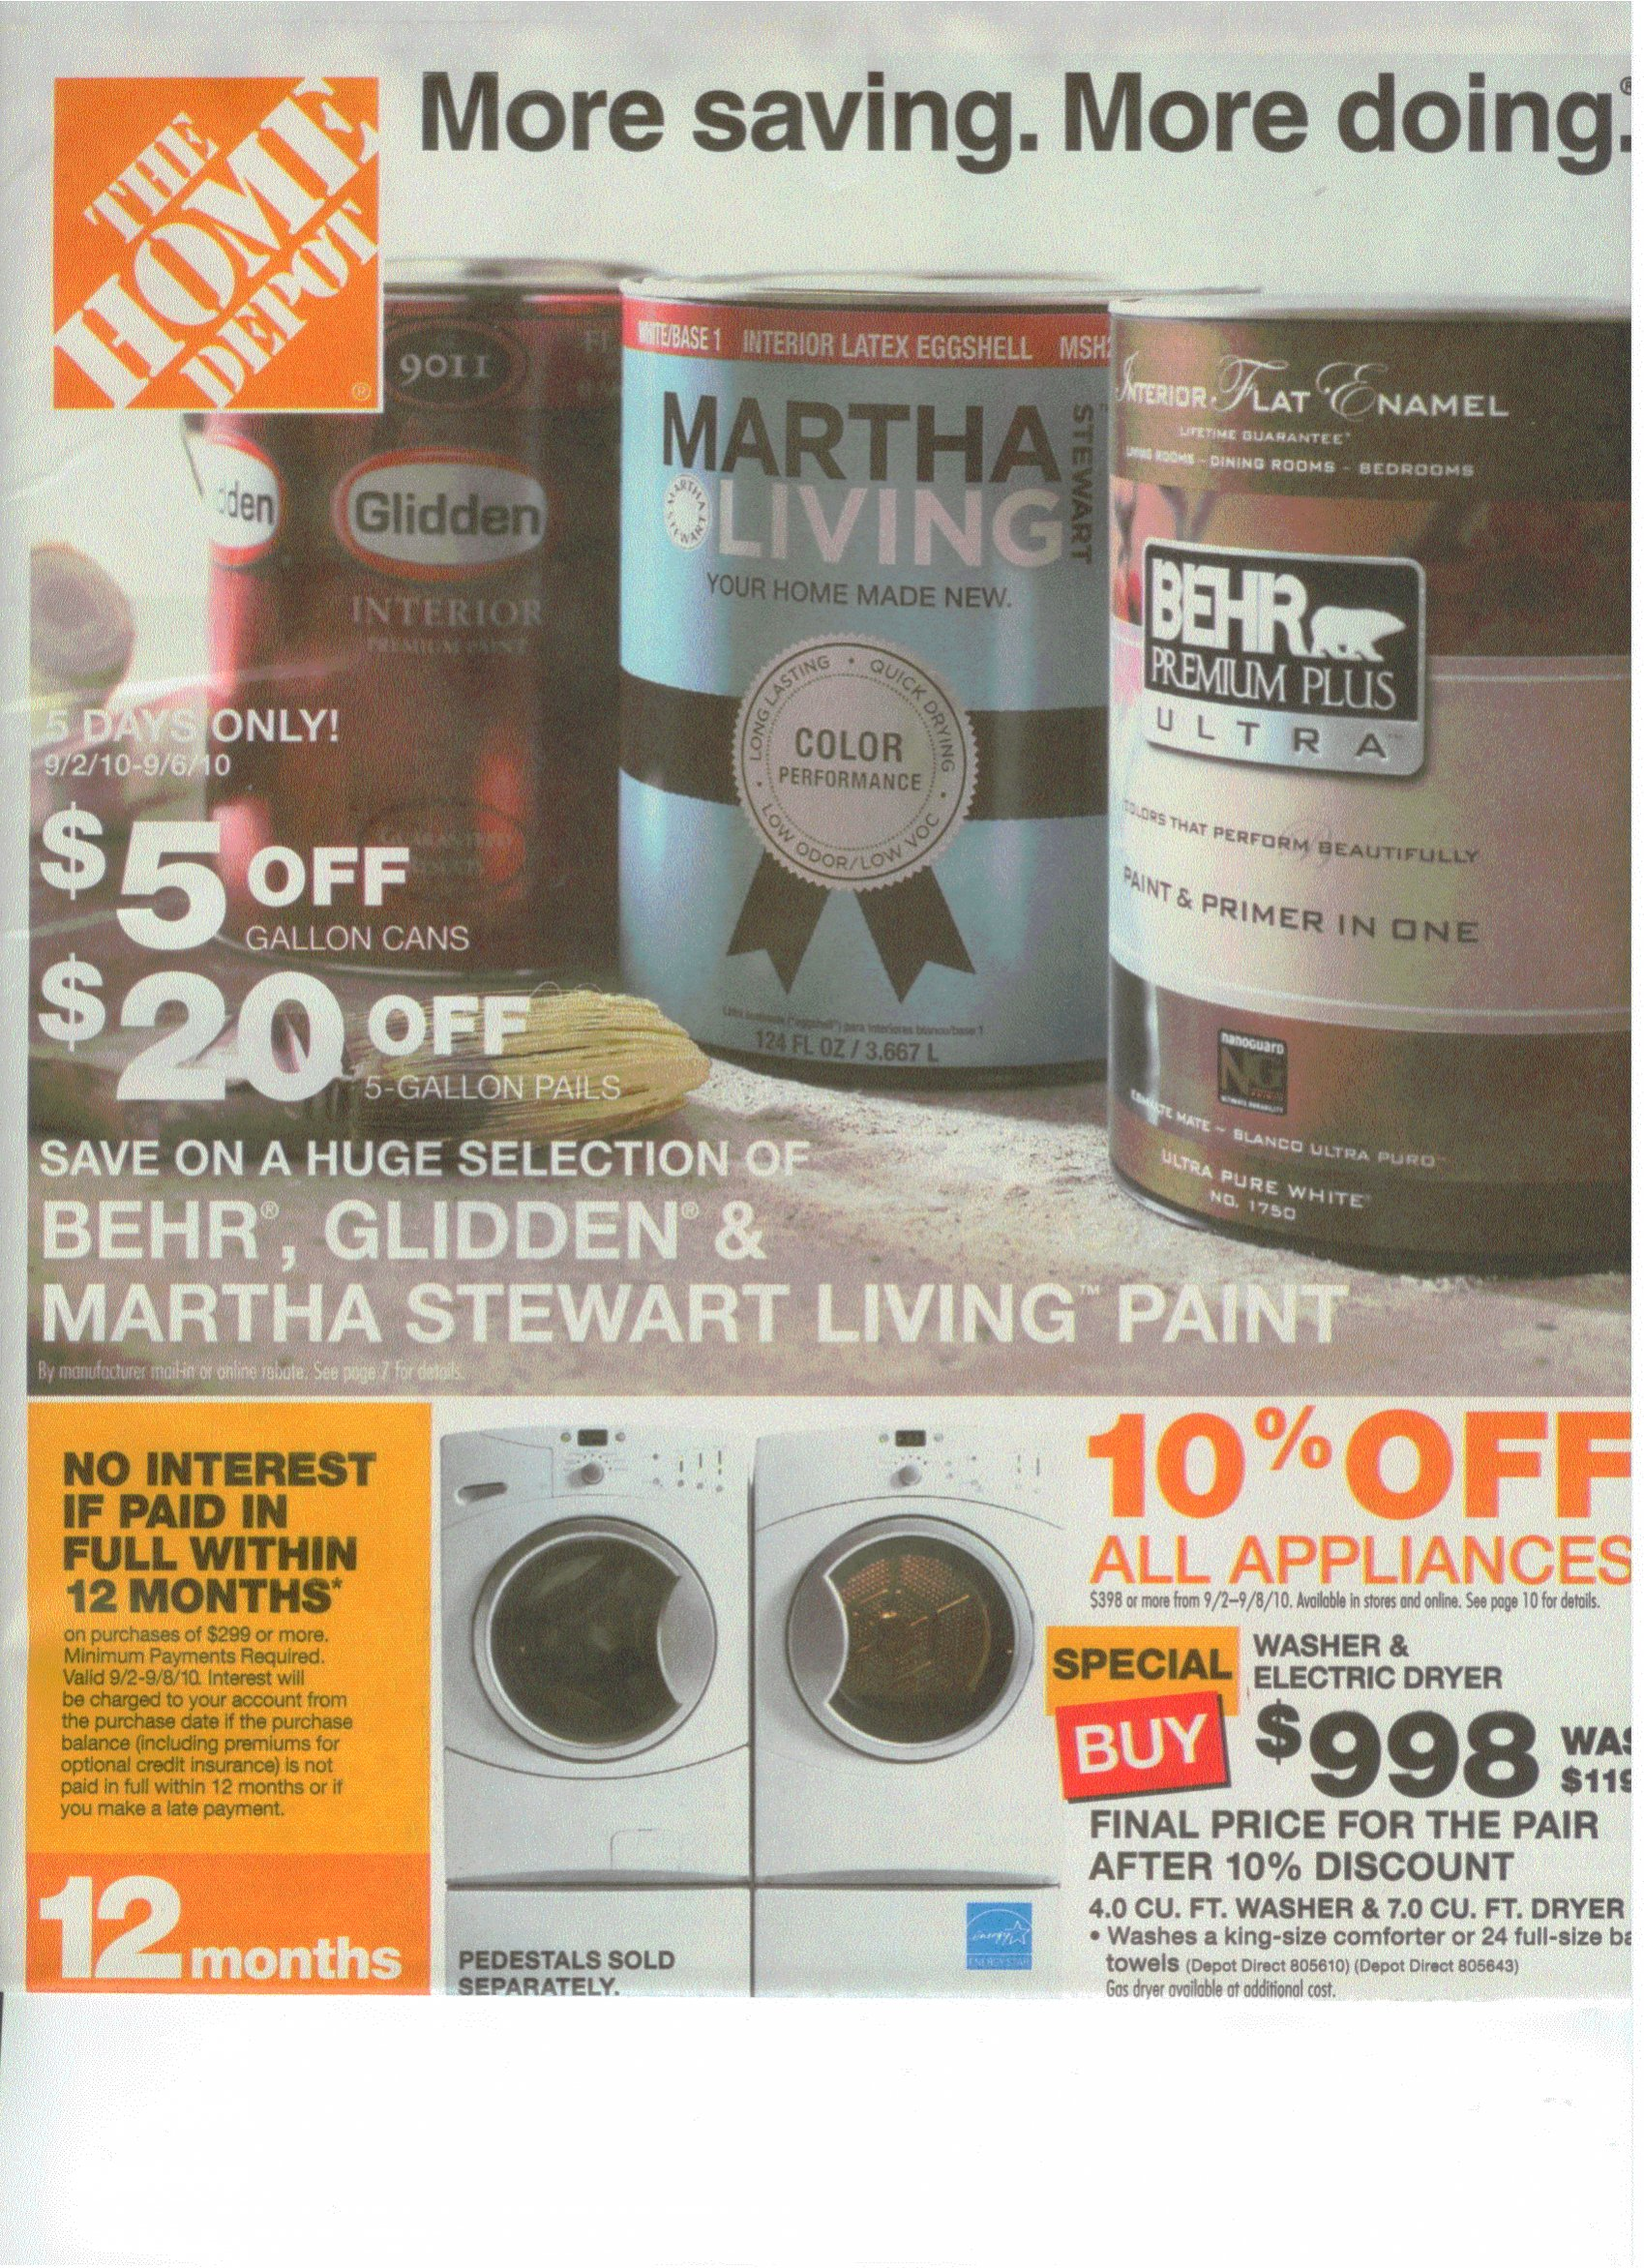 Home Depot Labor Day Sale Ad - Saving the Family Money